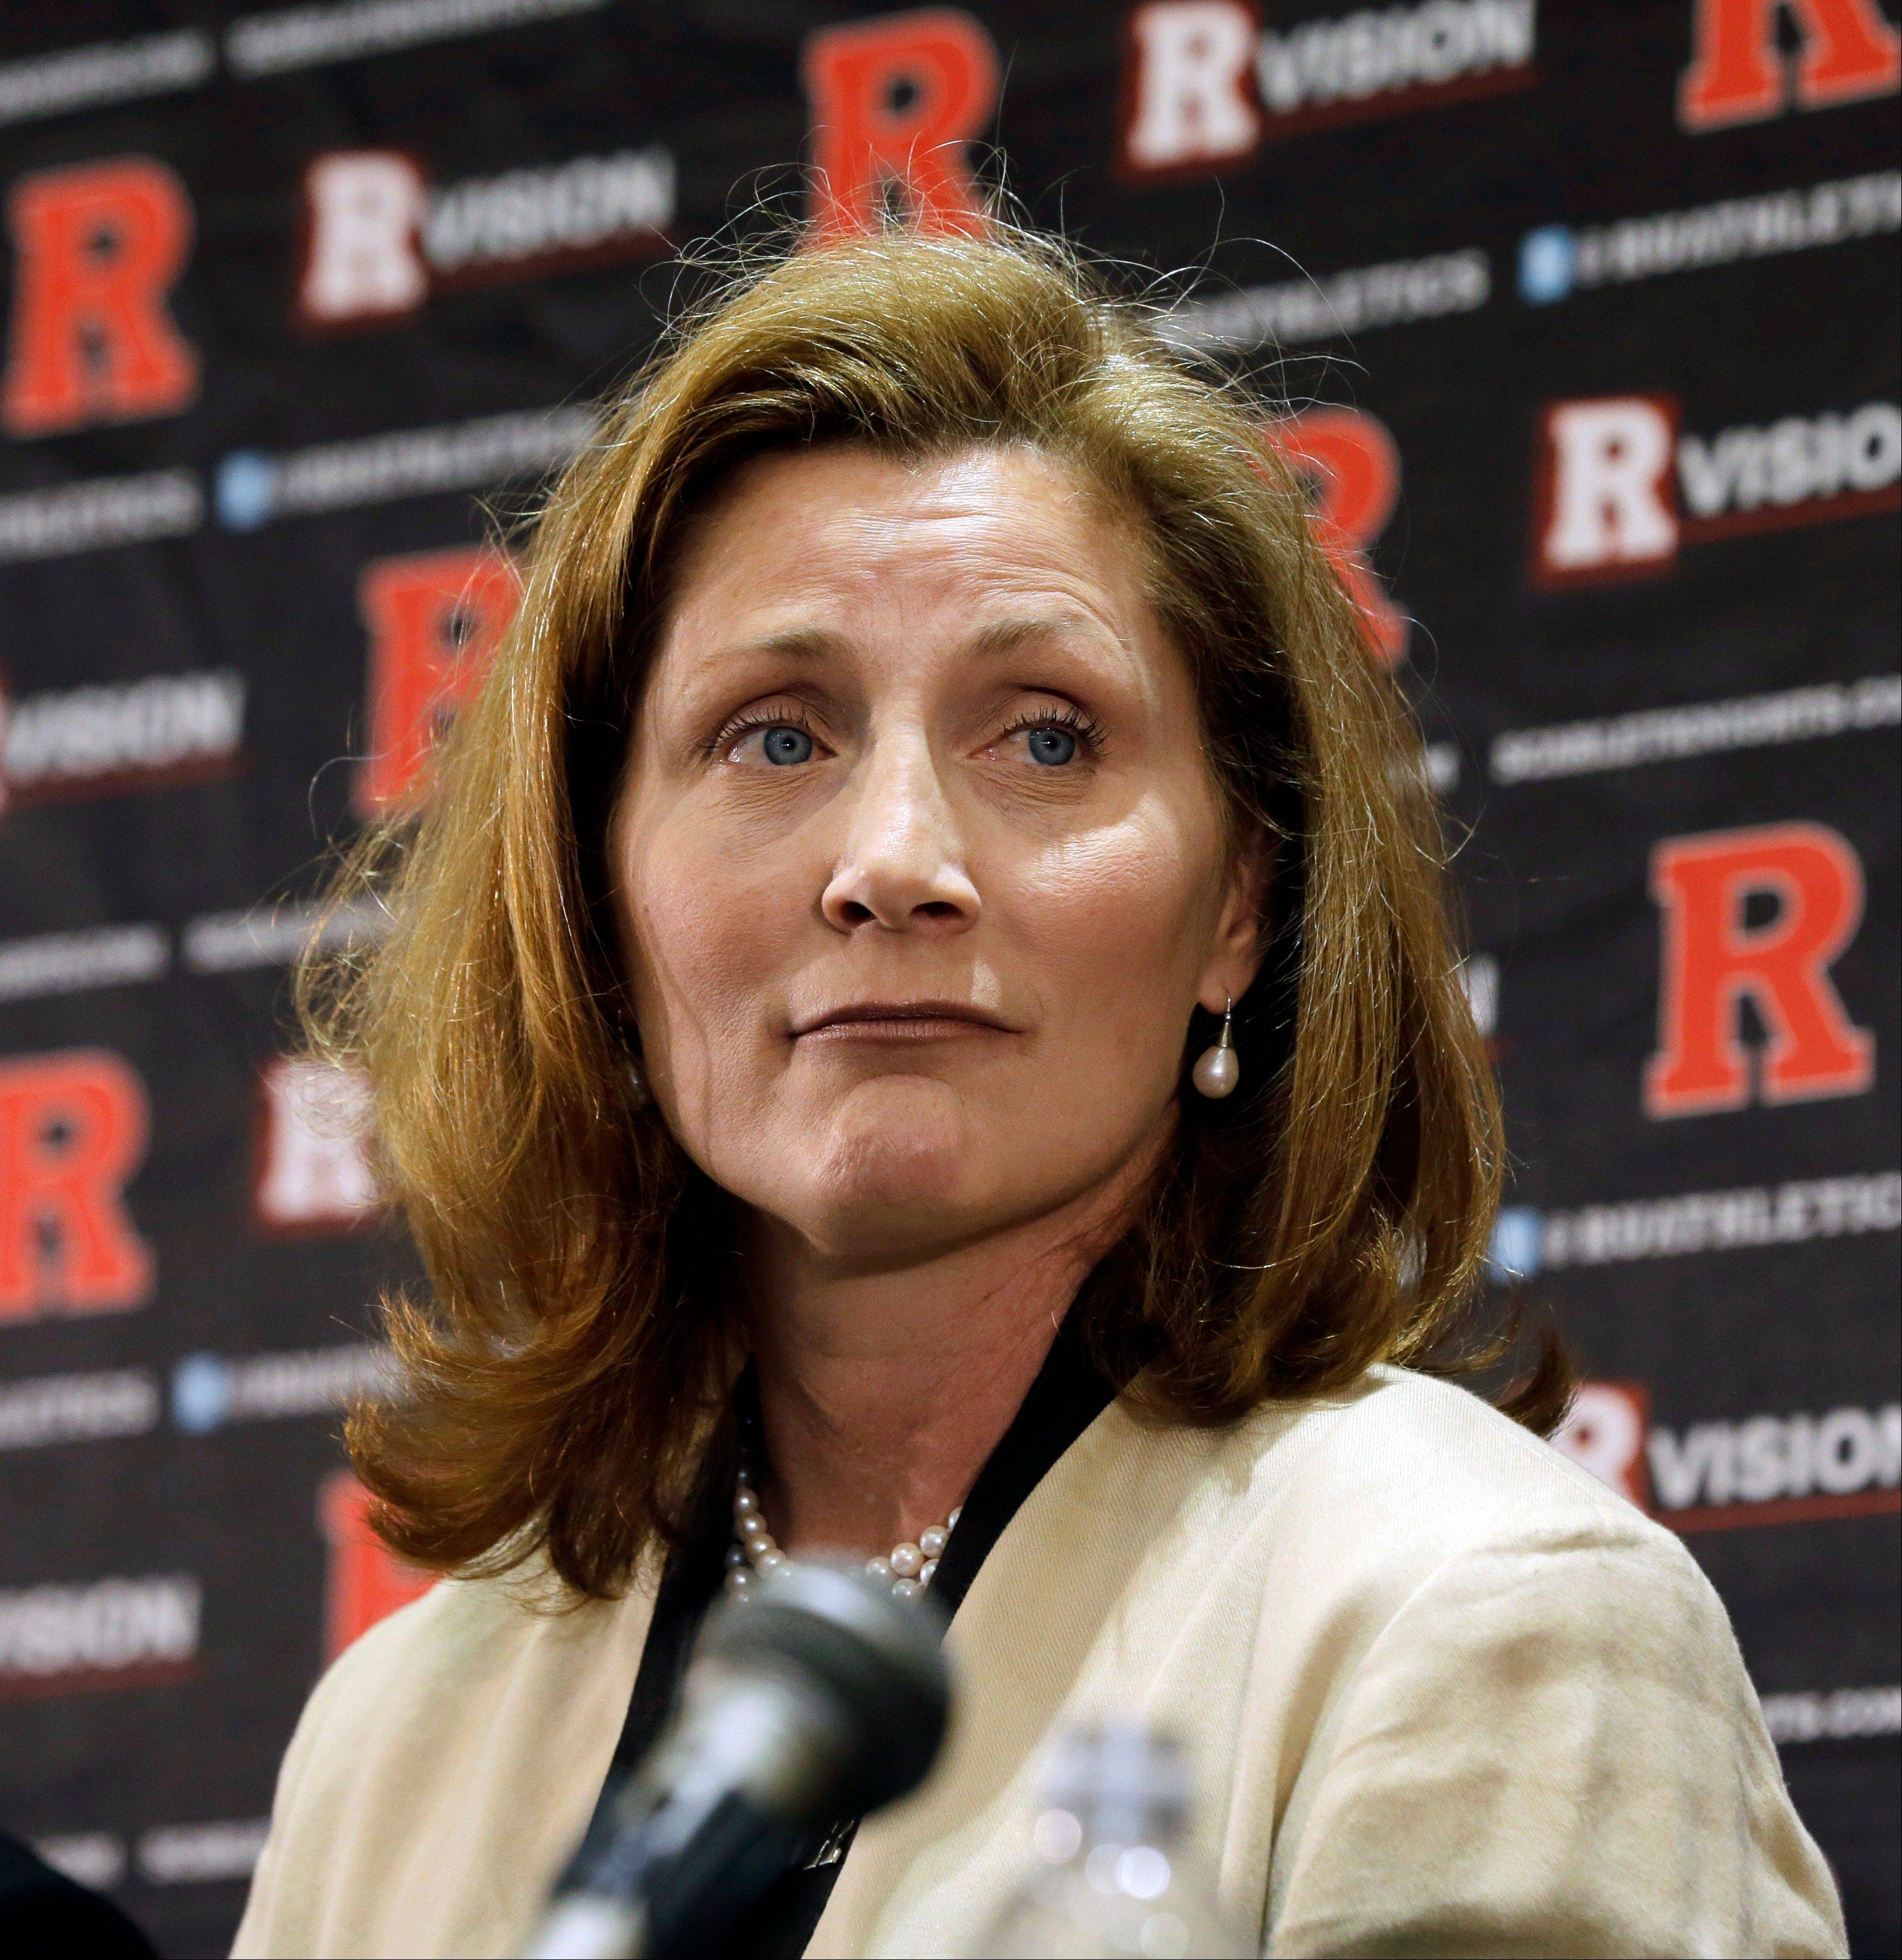 FILE - In this Wednesday, May 15, 2013 file photo, Julie Hermann listens during a news conference where she was introduced as the new athletic director at Rutgers University, in Piscataway, N.J. Hermann, hired to clean up Rutgers' scandal-scarred athletic program, quit as Tennessee's women's volleyball coach 16 years ago after her players submitted a letter complaining she ruled through humiliation, fear and emotional abuse, The Star-Ledger reported Saturday, May 25, 2013, on its website.